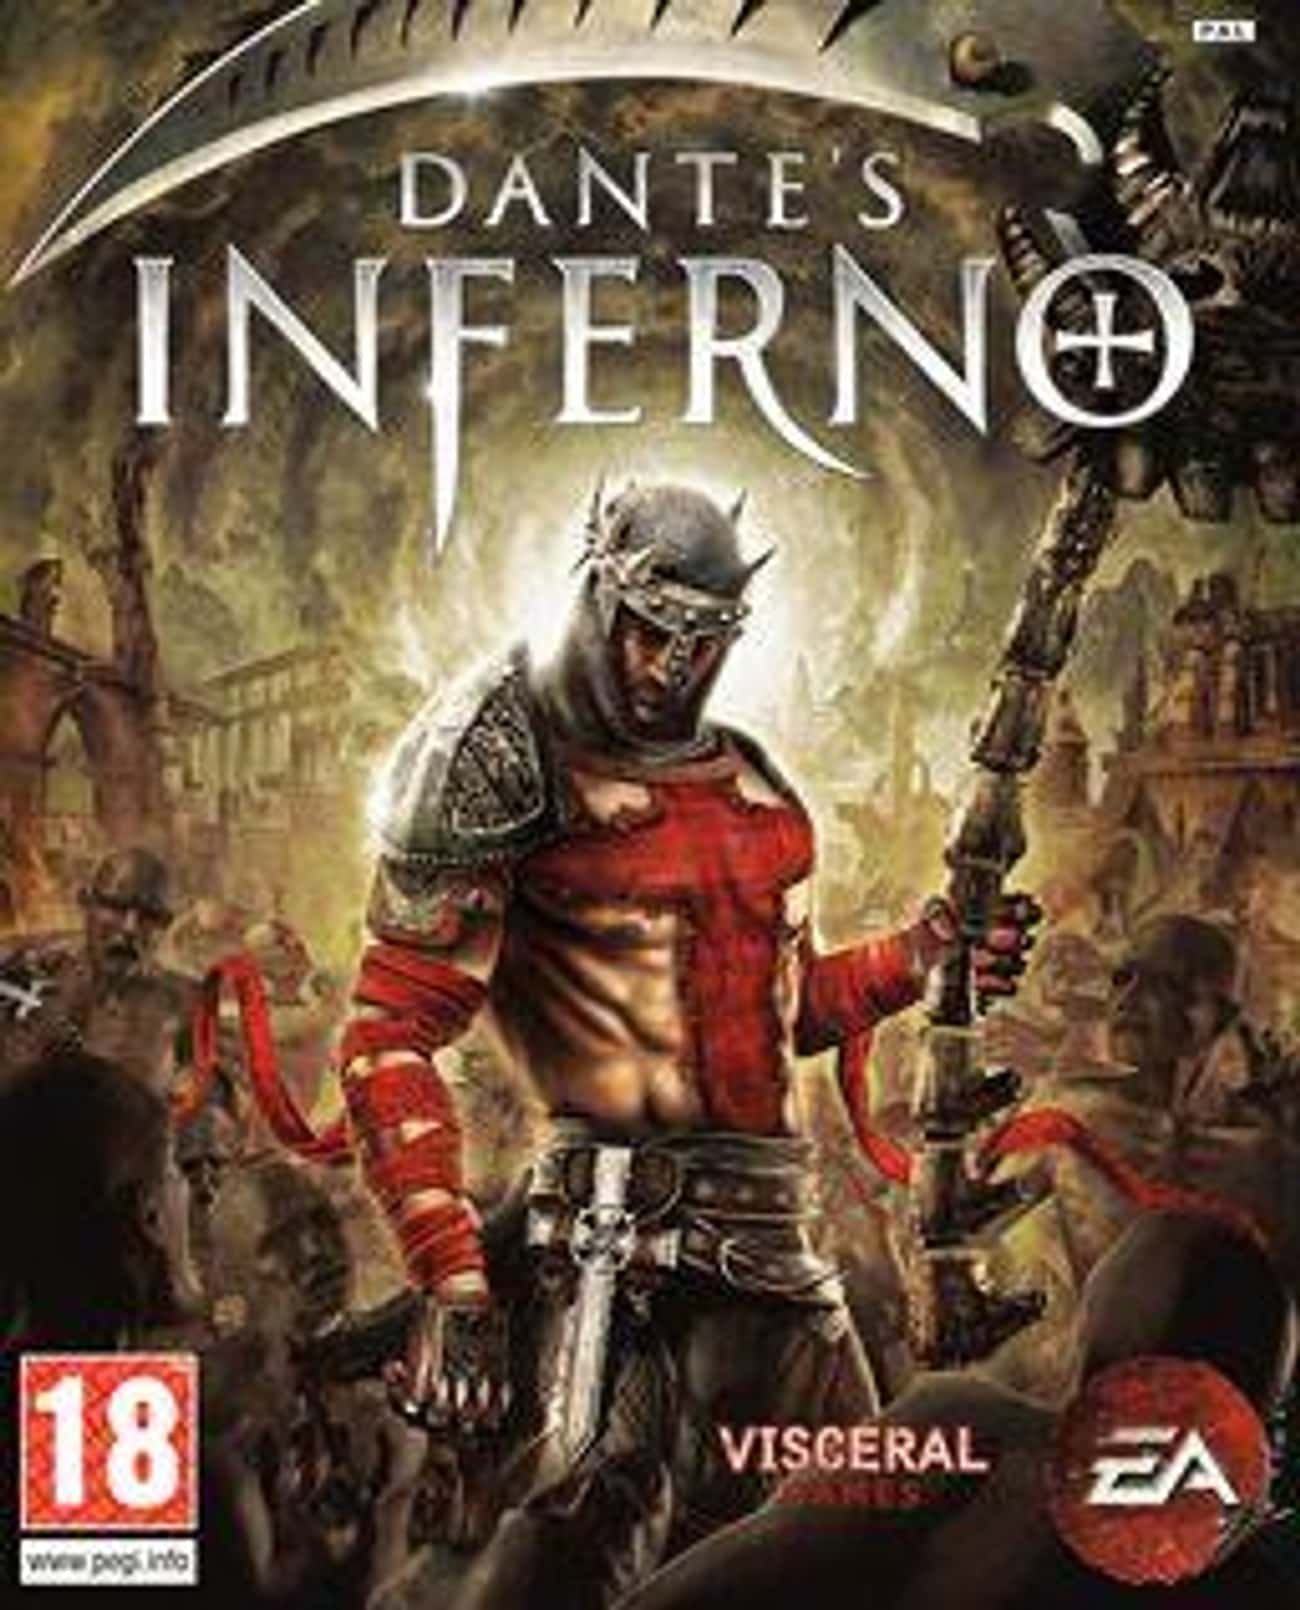 Dante's Inferno is listed (or ranked) 2 on the list Video Games Set In Hell, Ranked By How Much The Devil Would Approve